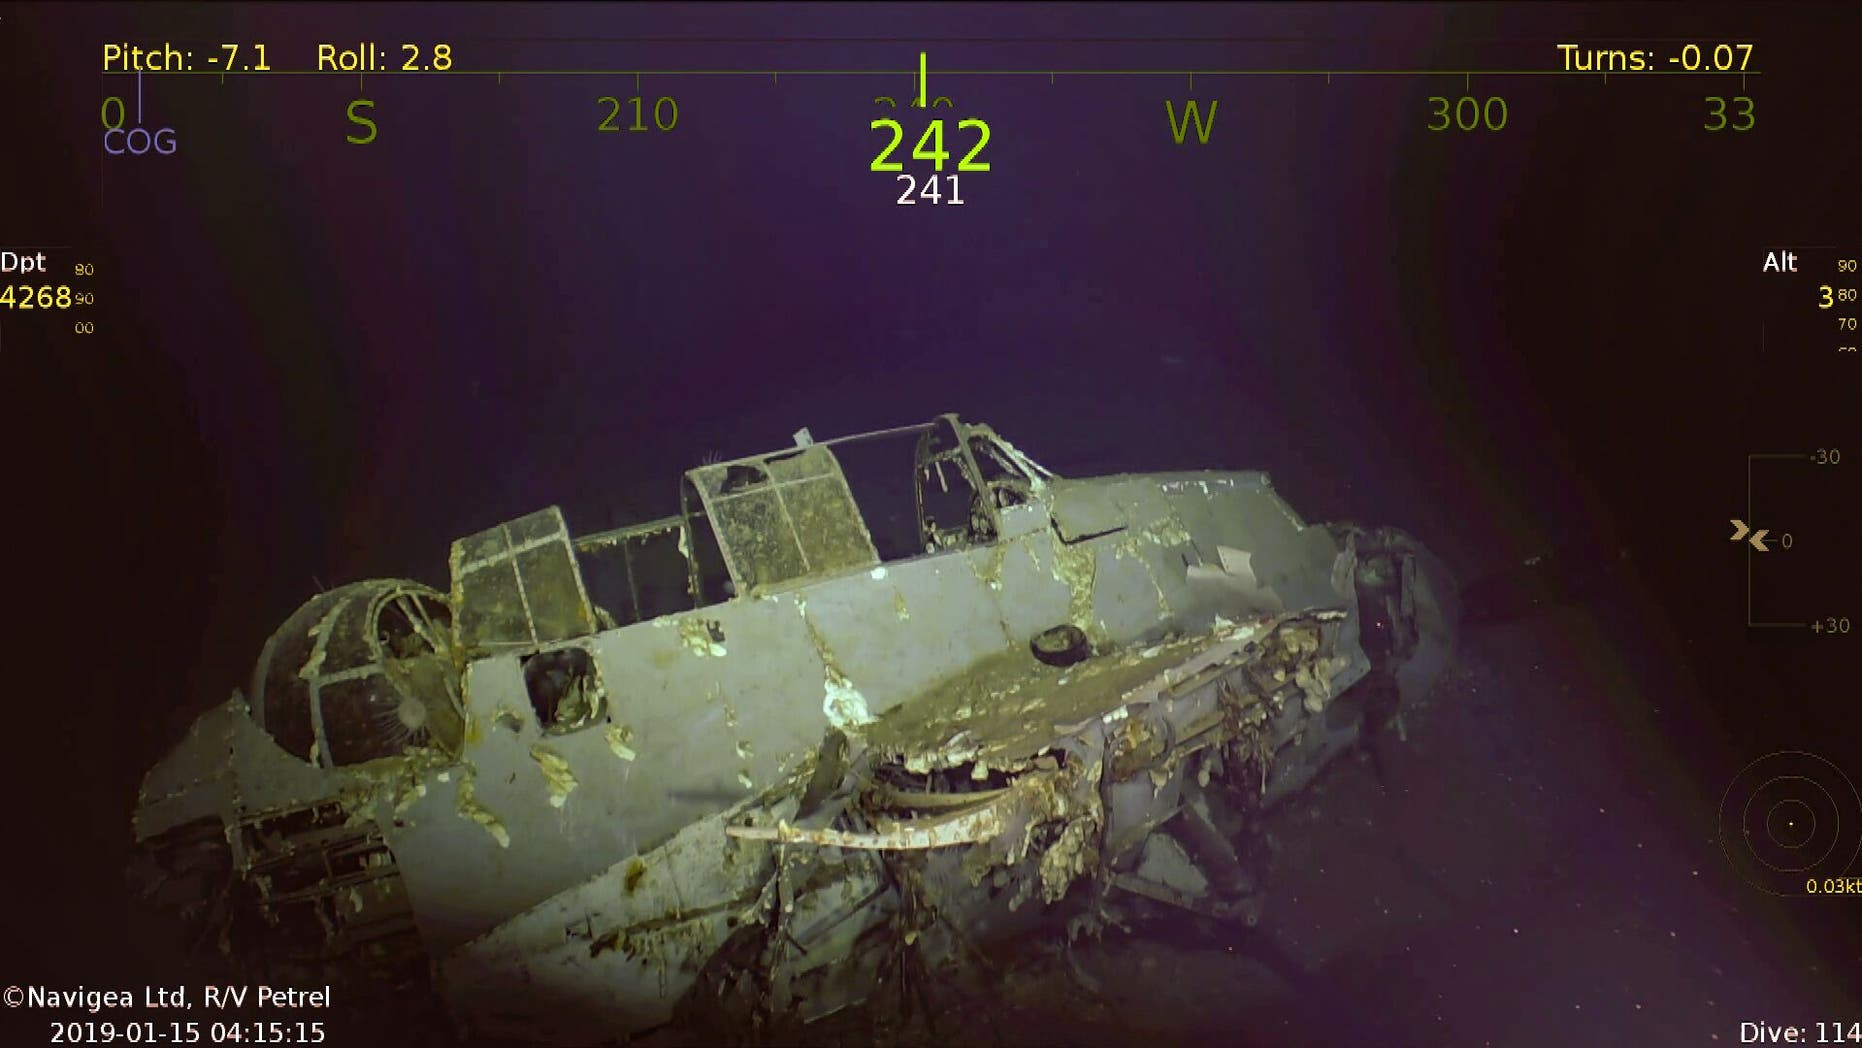 The USS Wasp sank on Sept. 15, 1942.